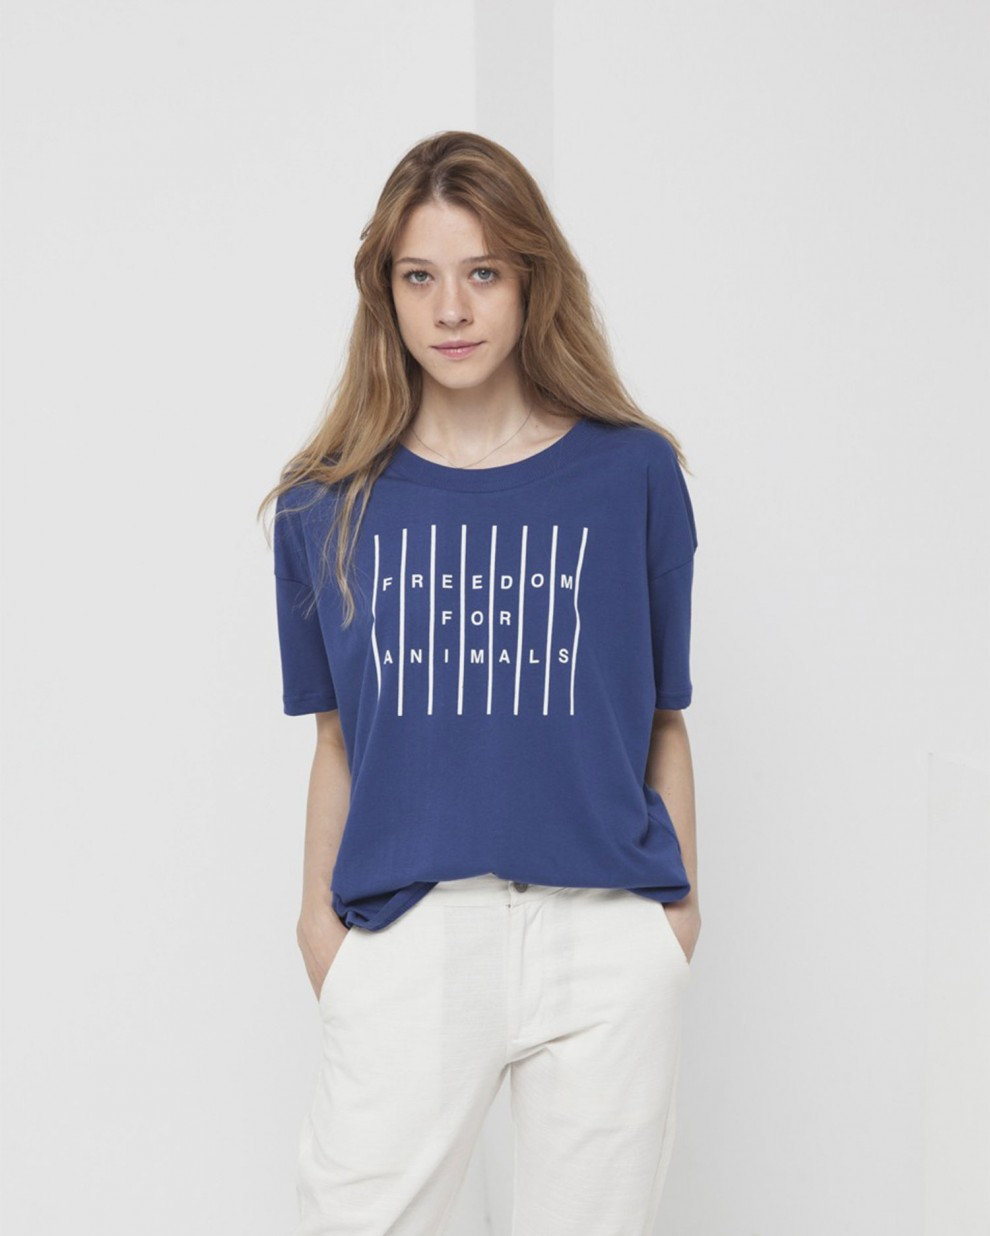 Freedom For Animals Ivy T-Shirt